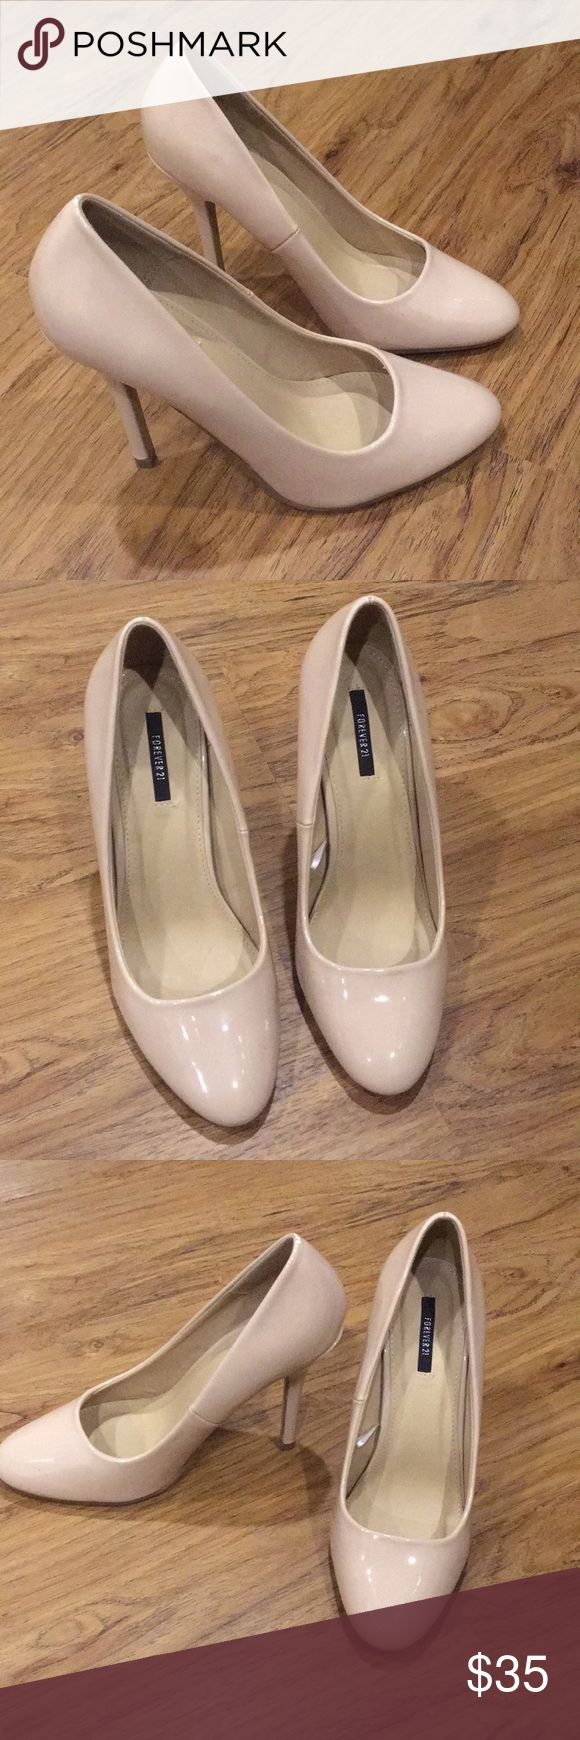 Flattering heels These champagne-colored heels are practically brand new if not for one or two hardly noticeable markings Forever 21 Shoes Heels